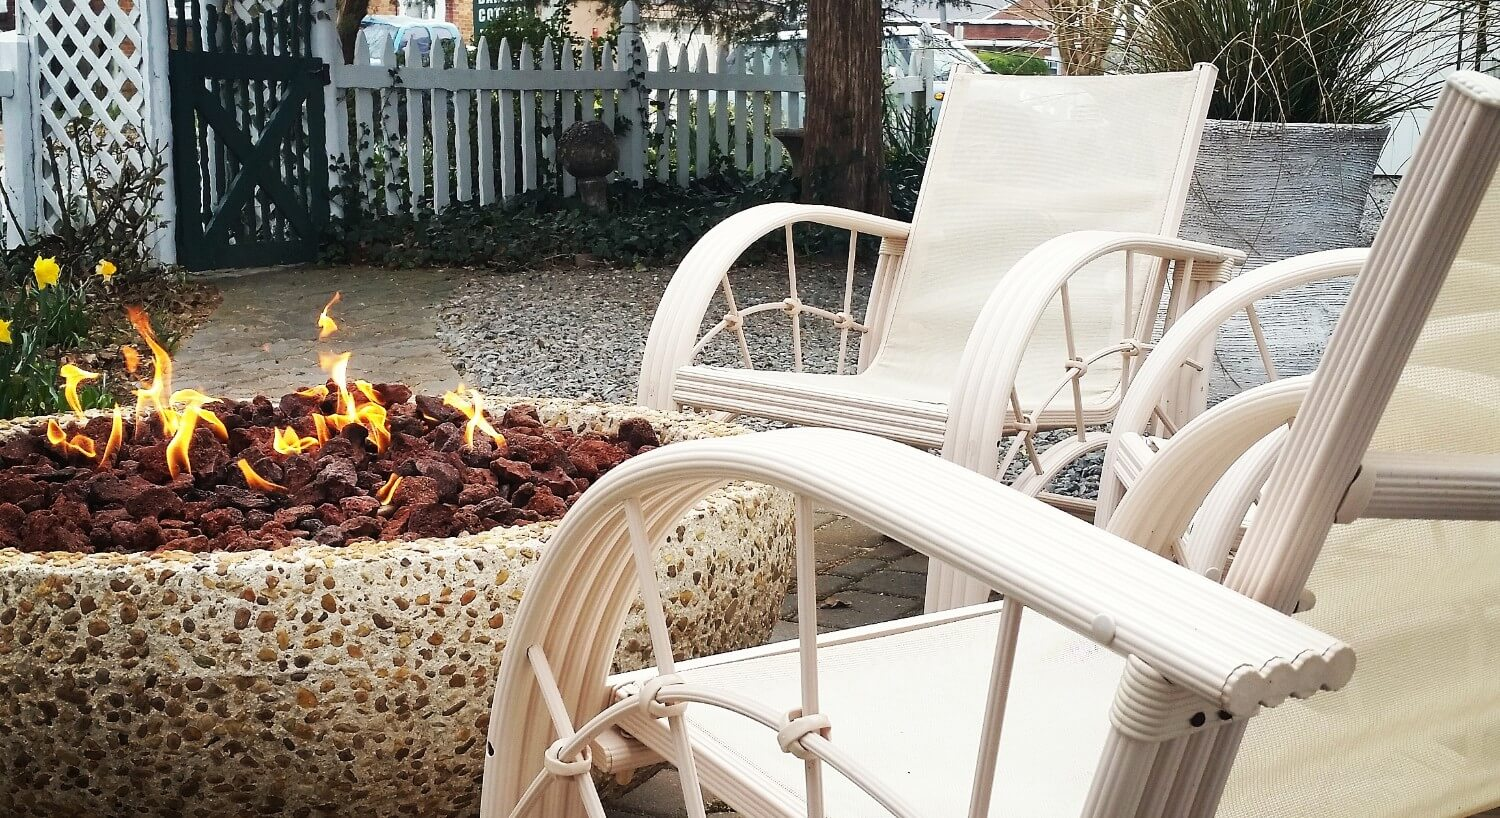 White chairs surround a unique fire pit in an outdoor patio next to a fence.